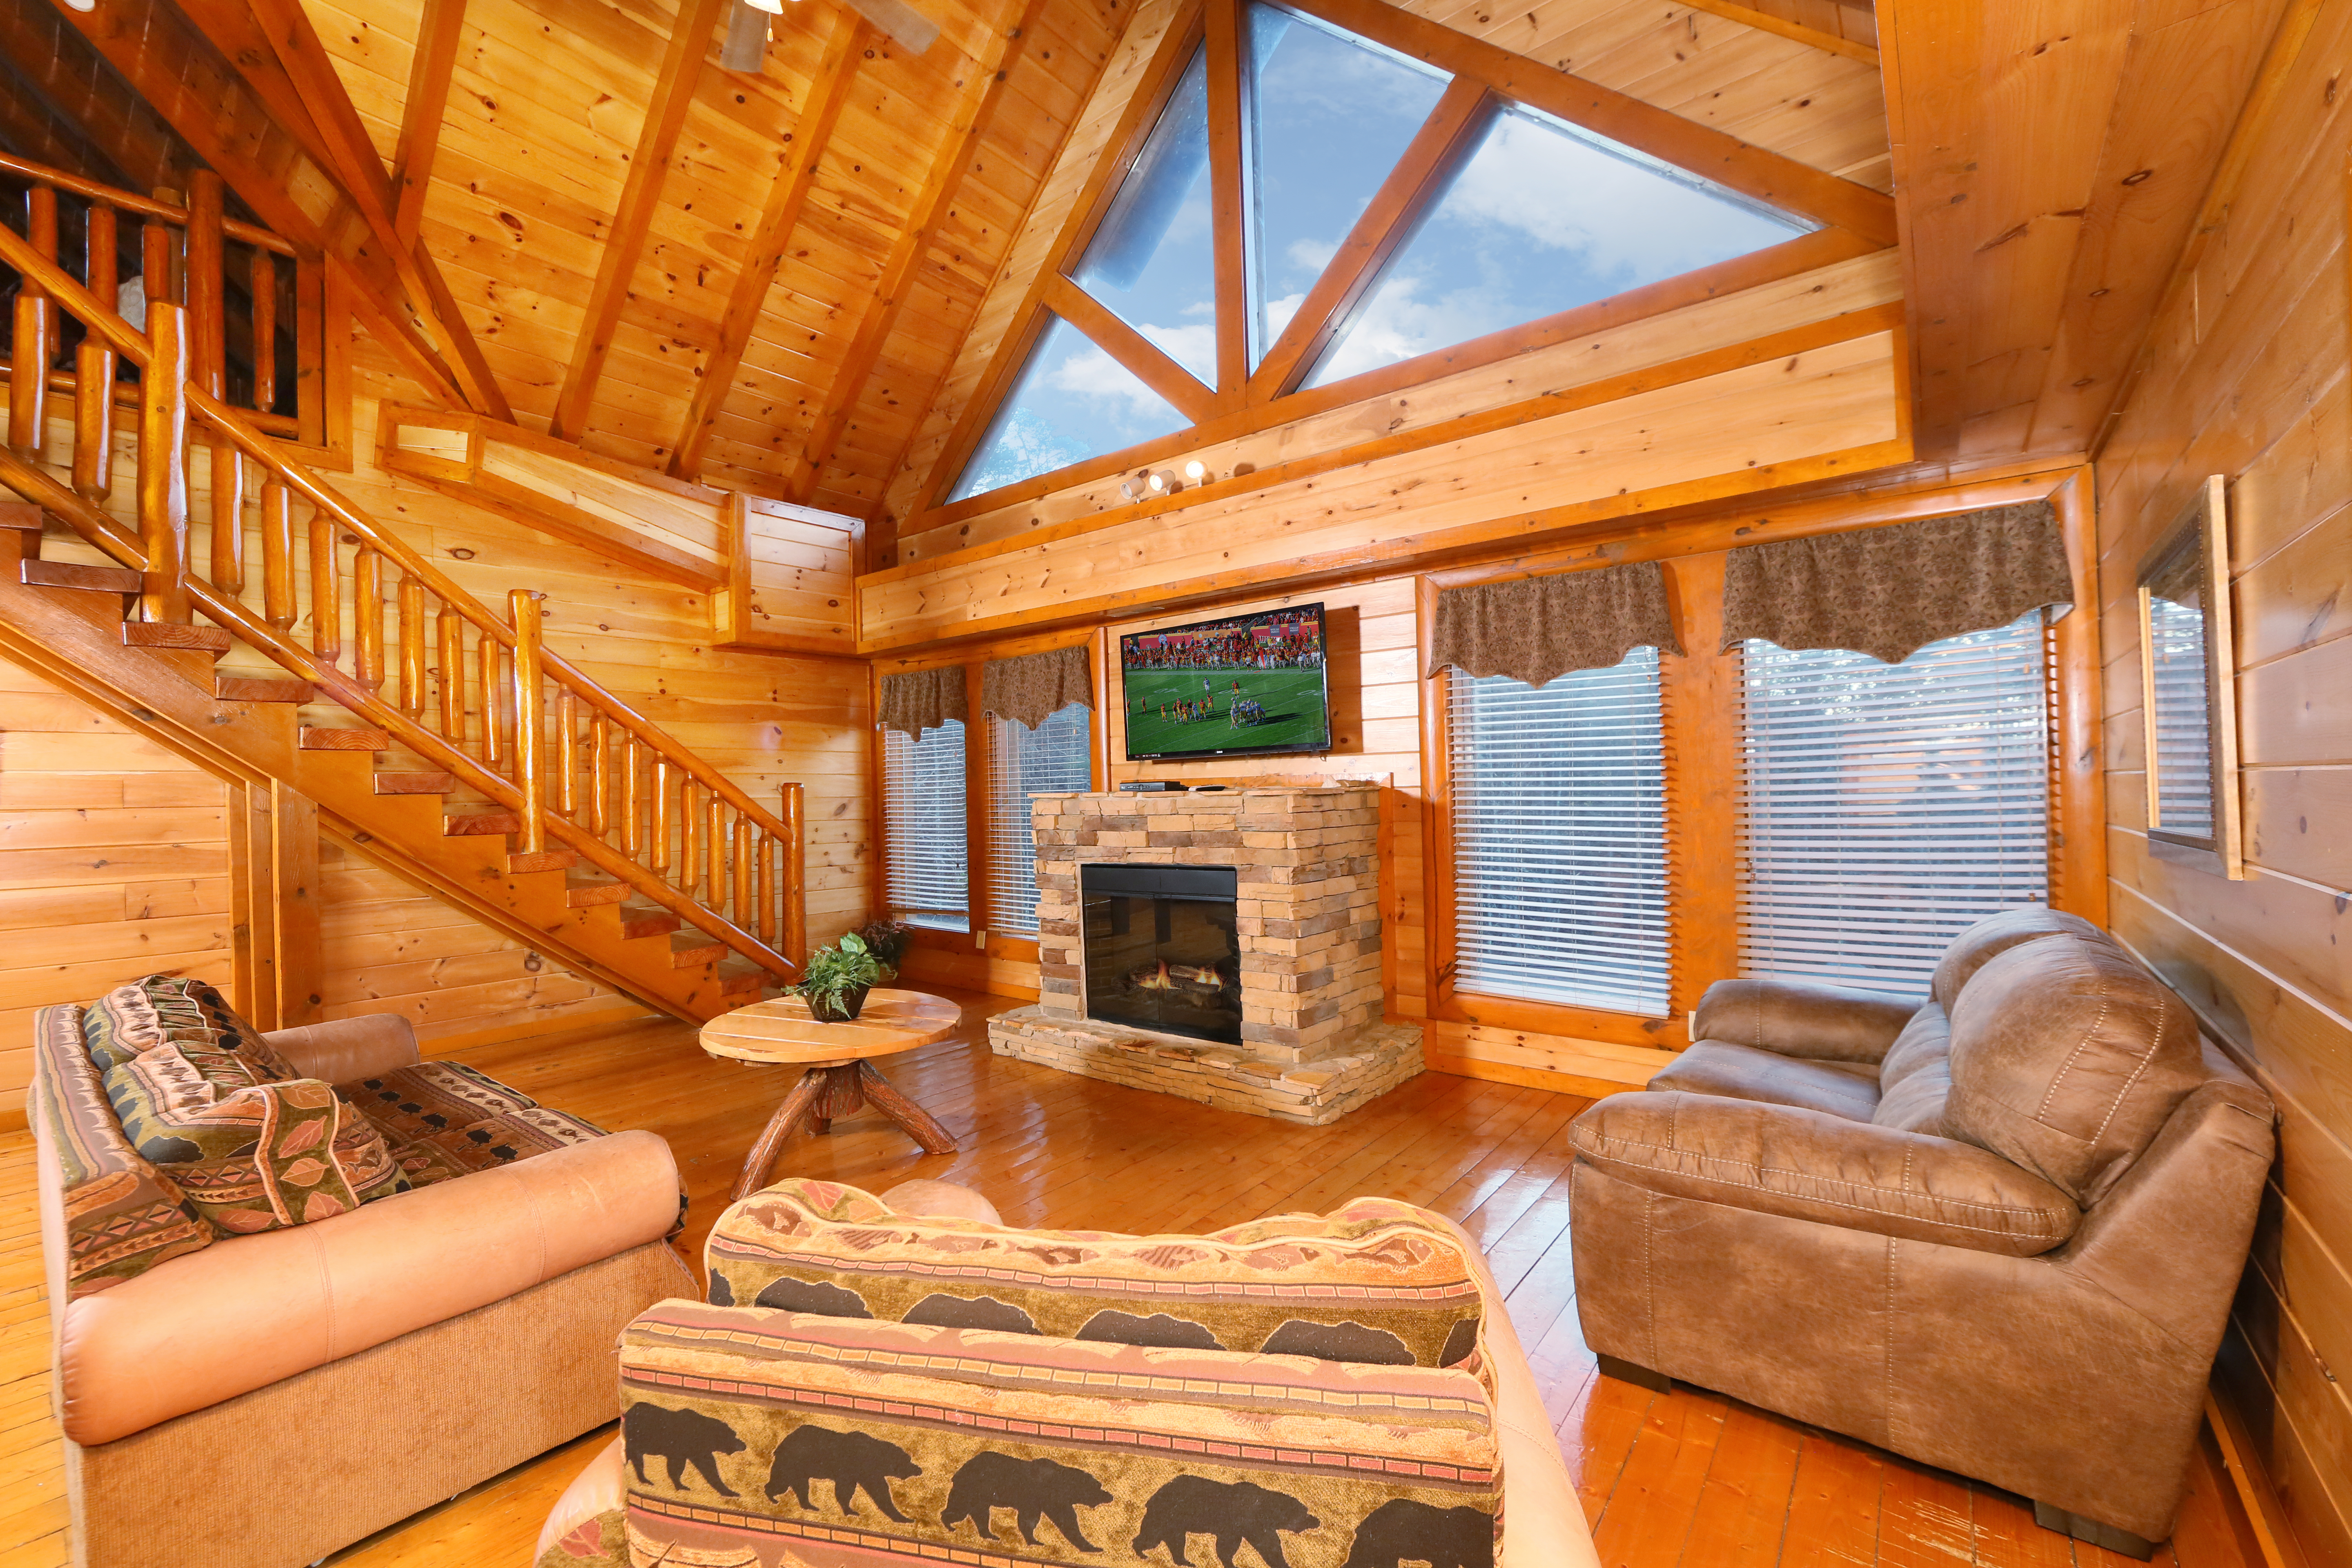 like mountains mountain featured perched pin we scenic to the smoky cabin be cabins is atop where